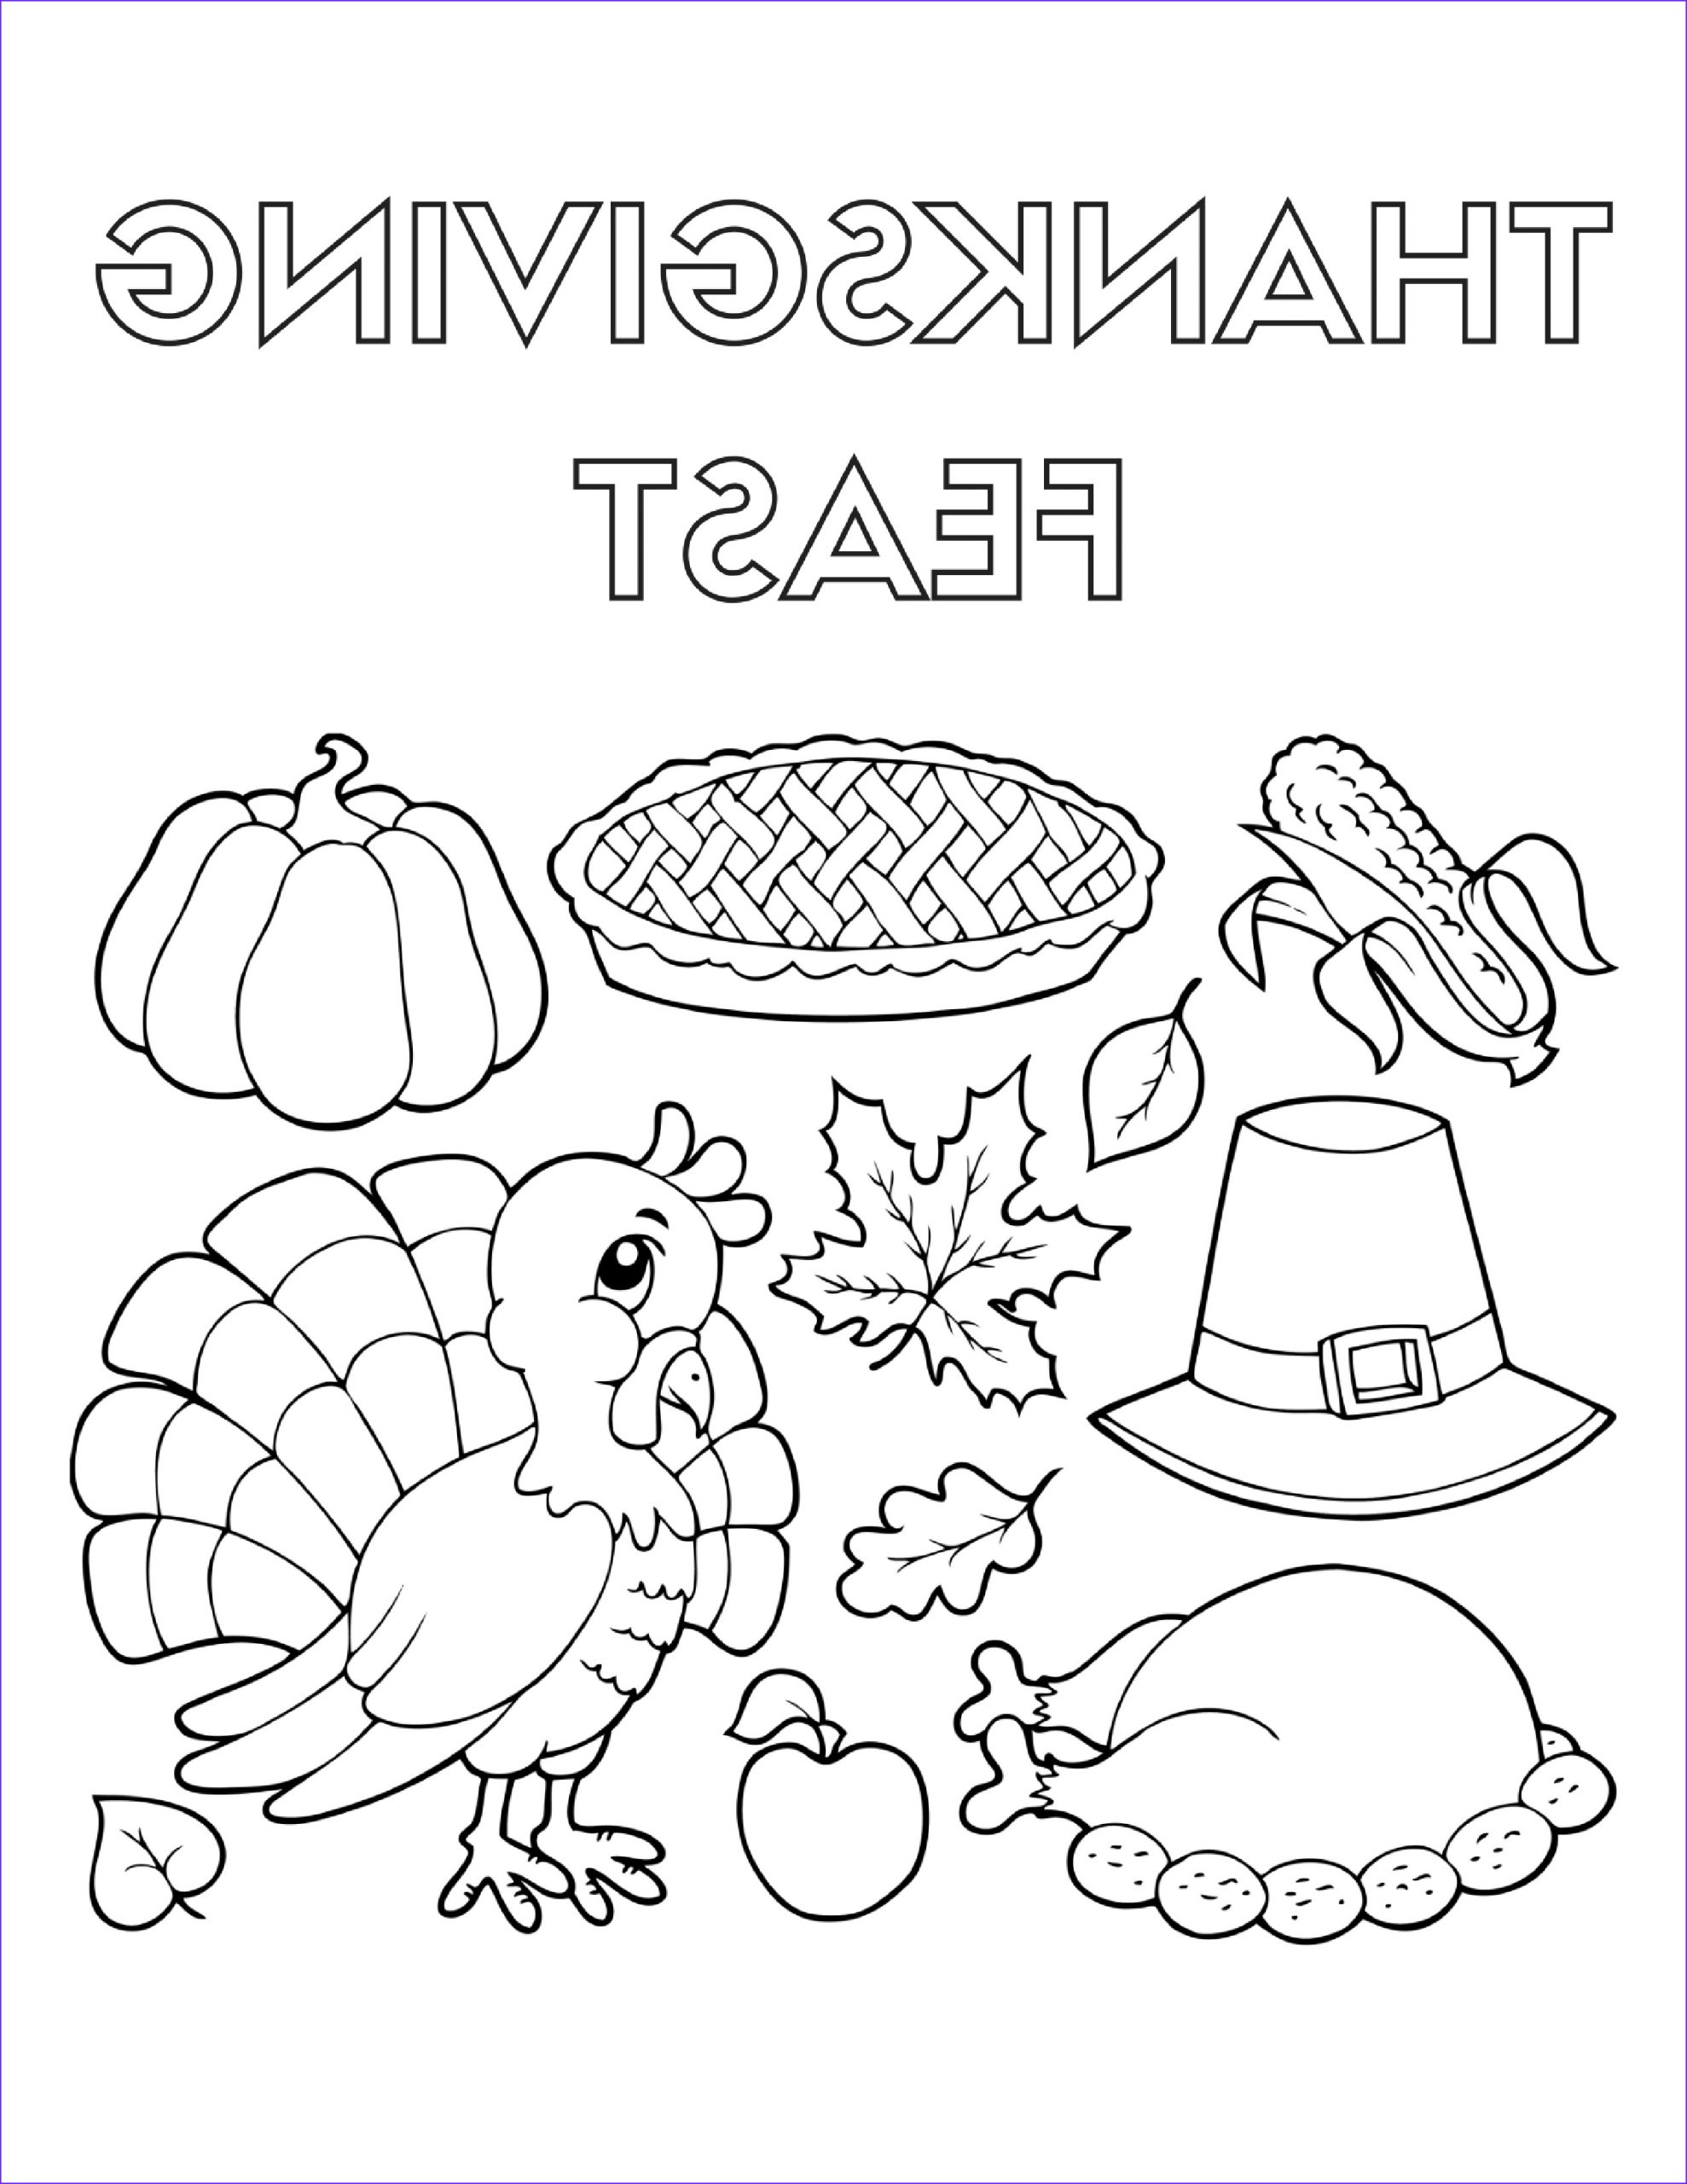 Thanksgiving Coloring Page to Print Awesome Photos Thanksgiving Food Coloring Pages at Getcolorings